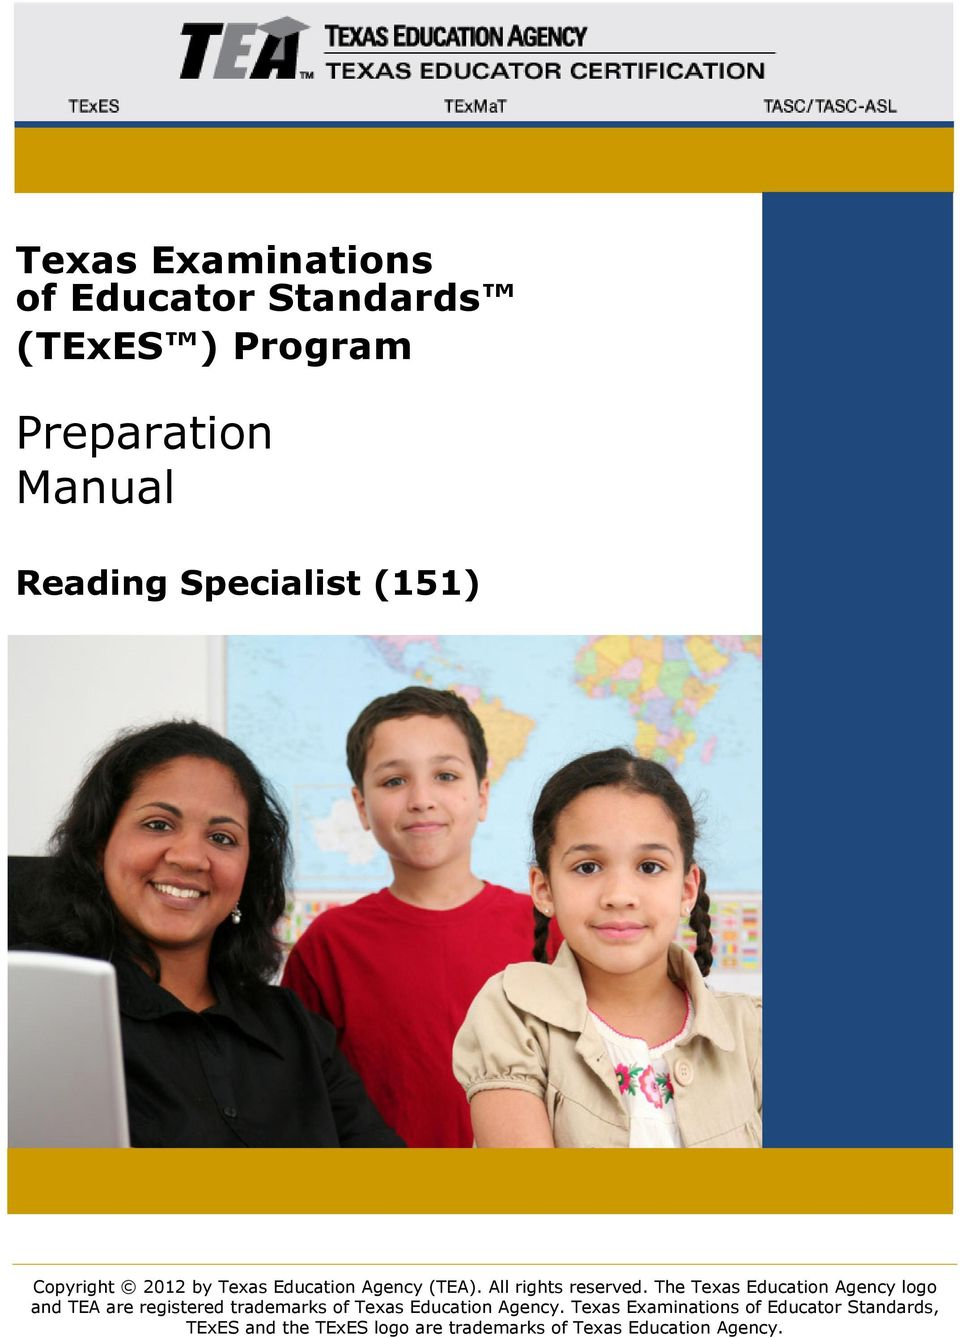 The Texas Education Agency logo and TEA are registered trademarks of Texas Education Agency.